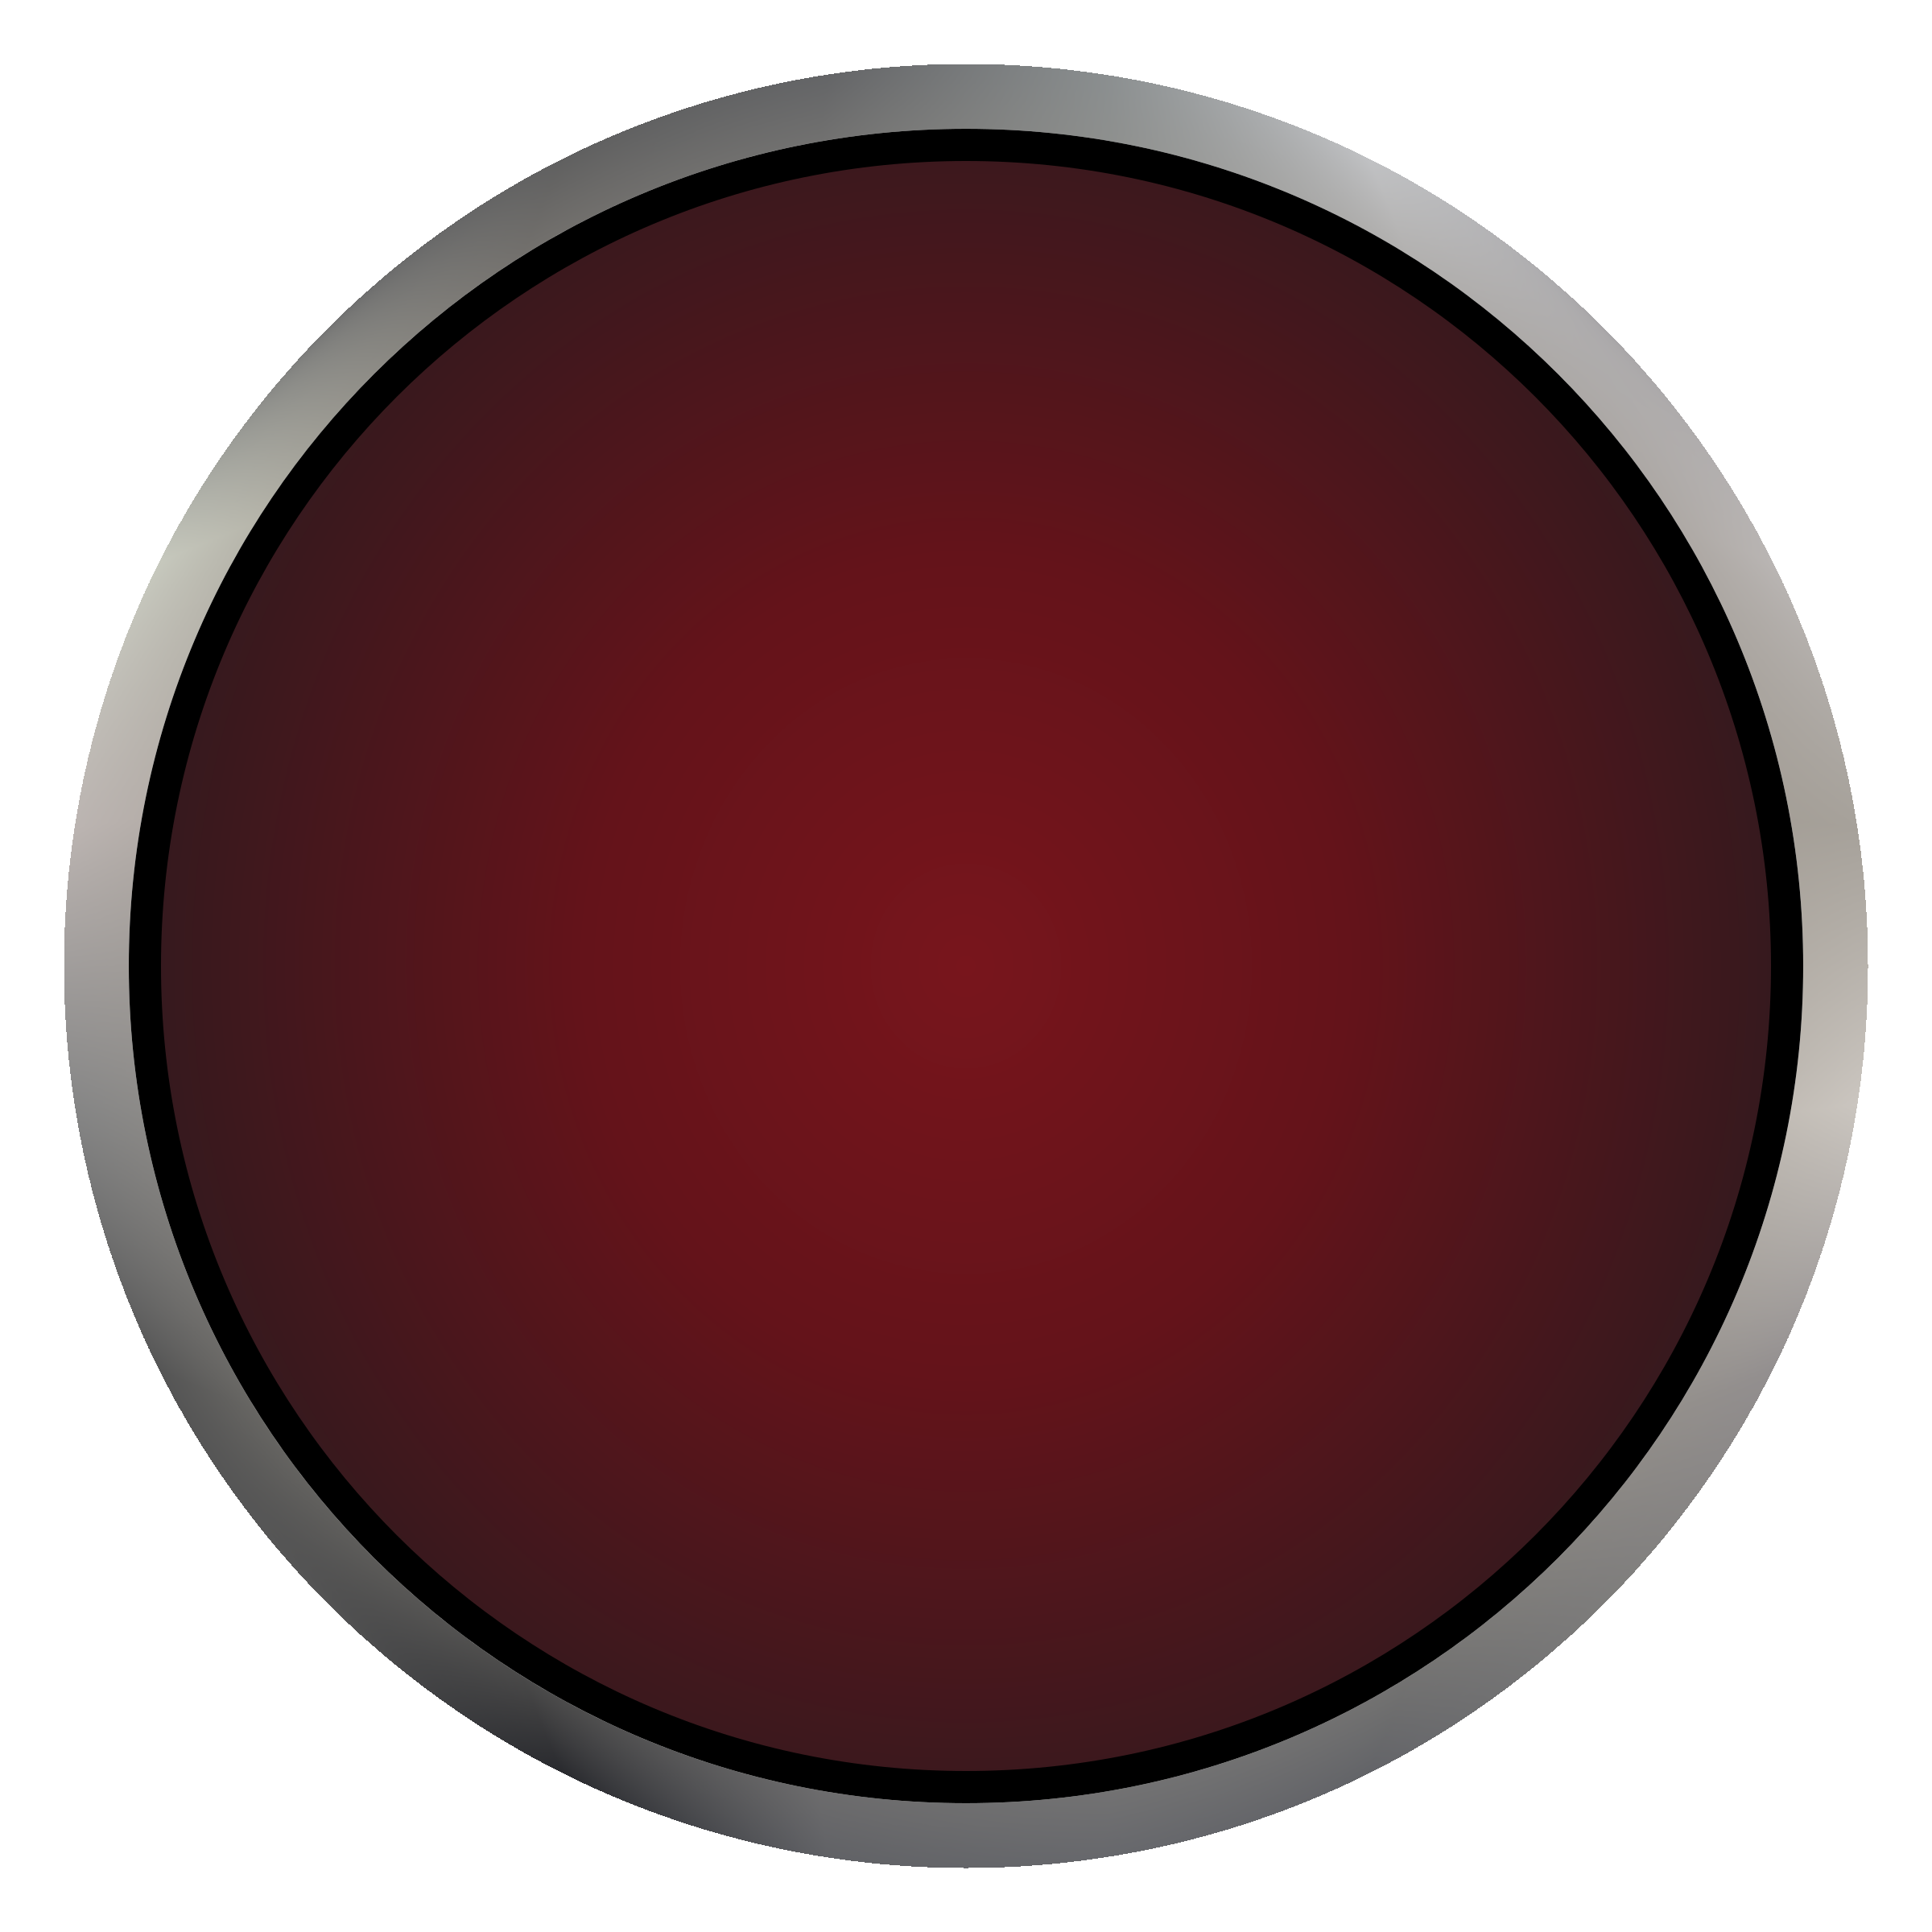 Industrial Push Button Red by deusinvictus